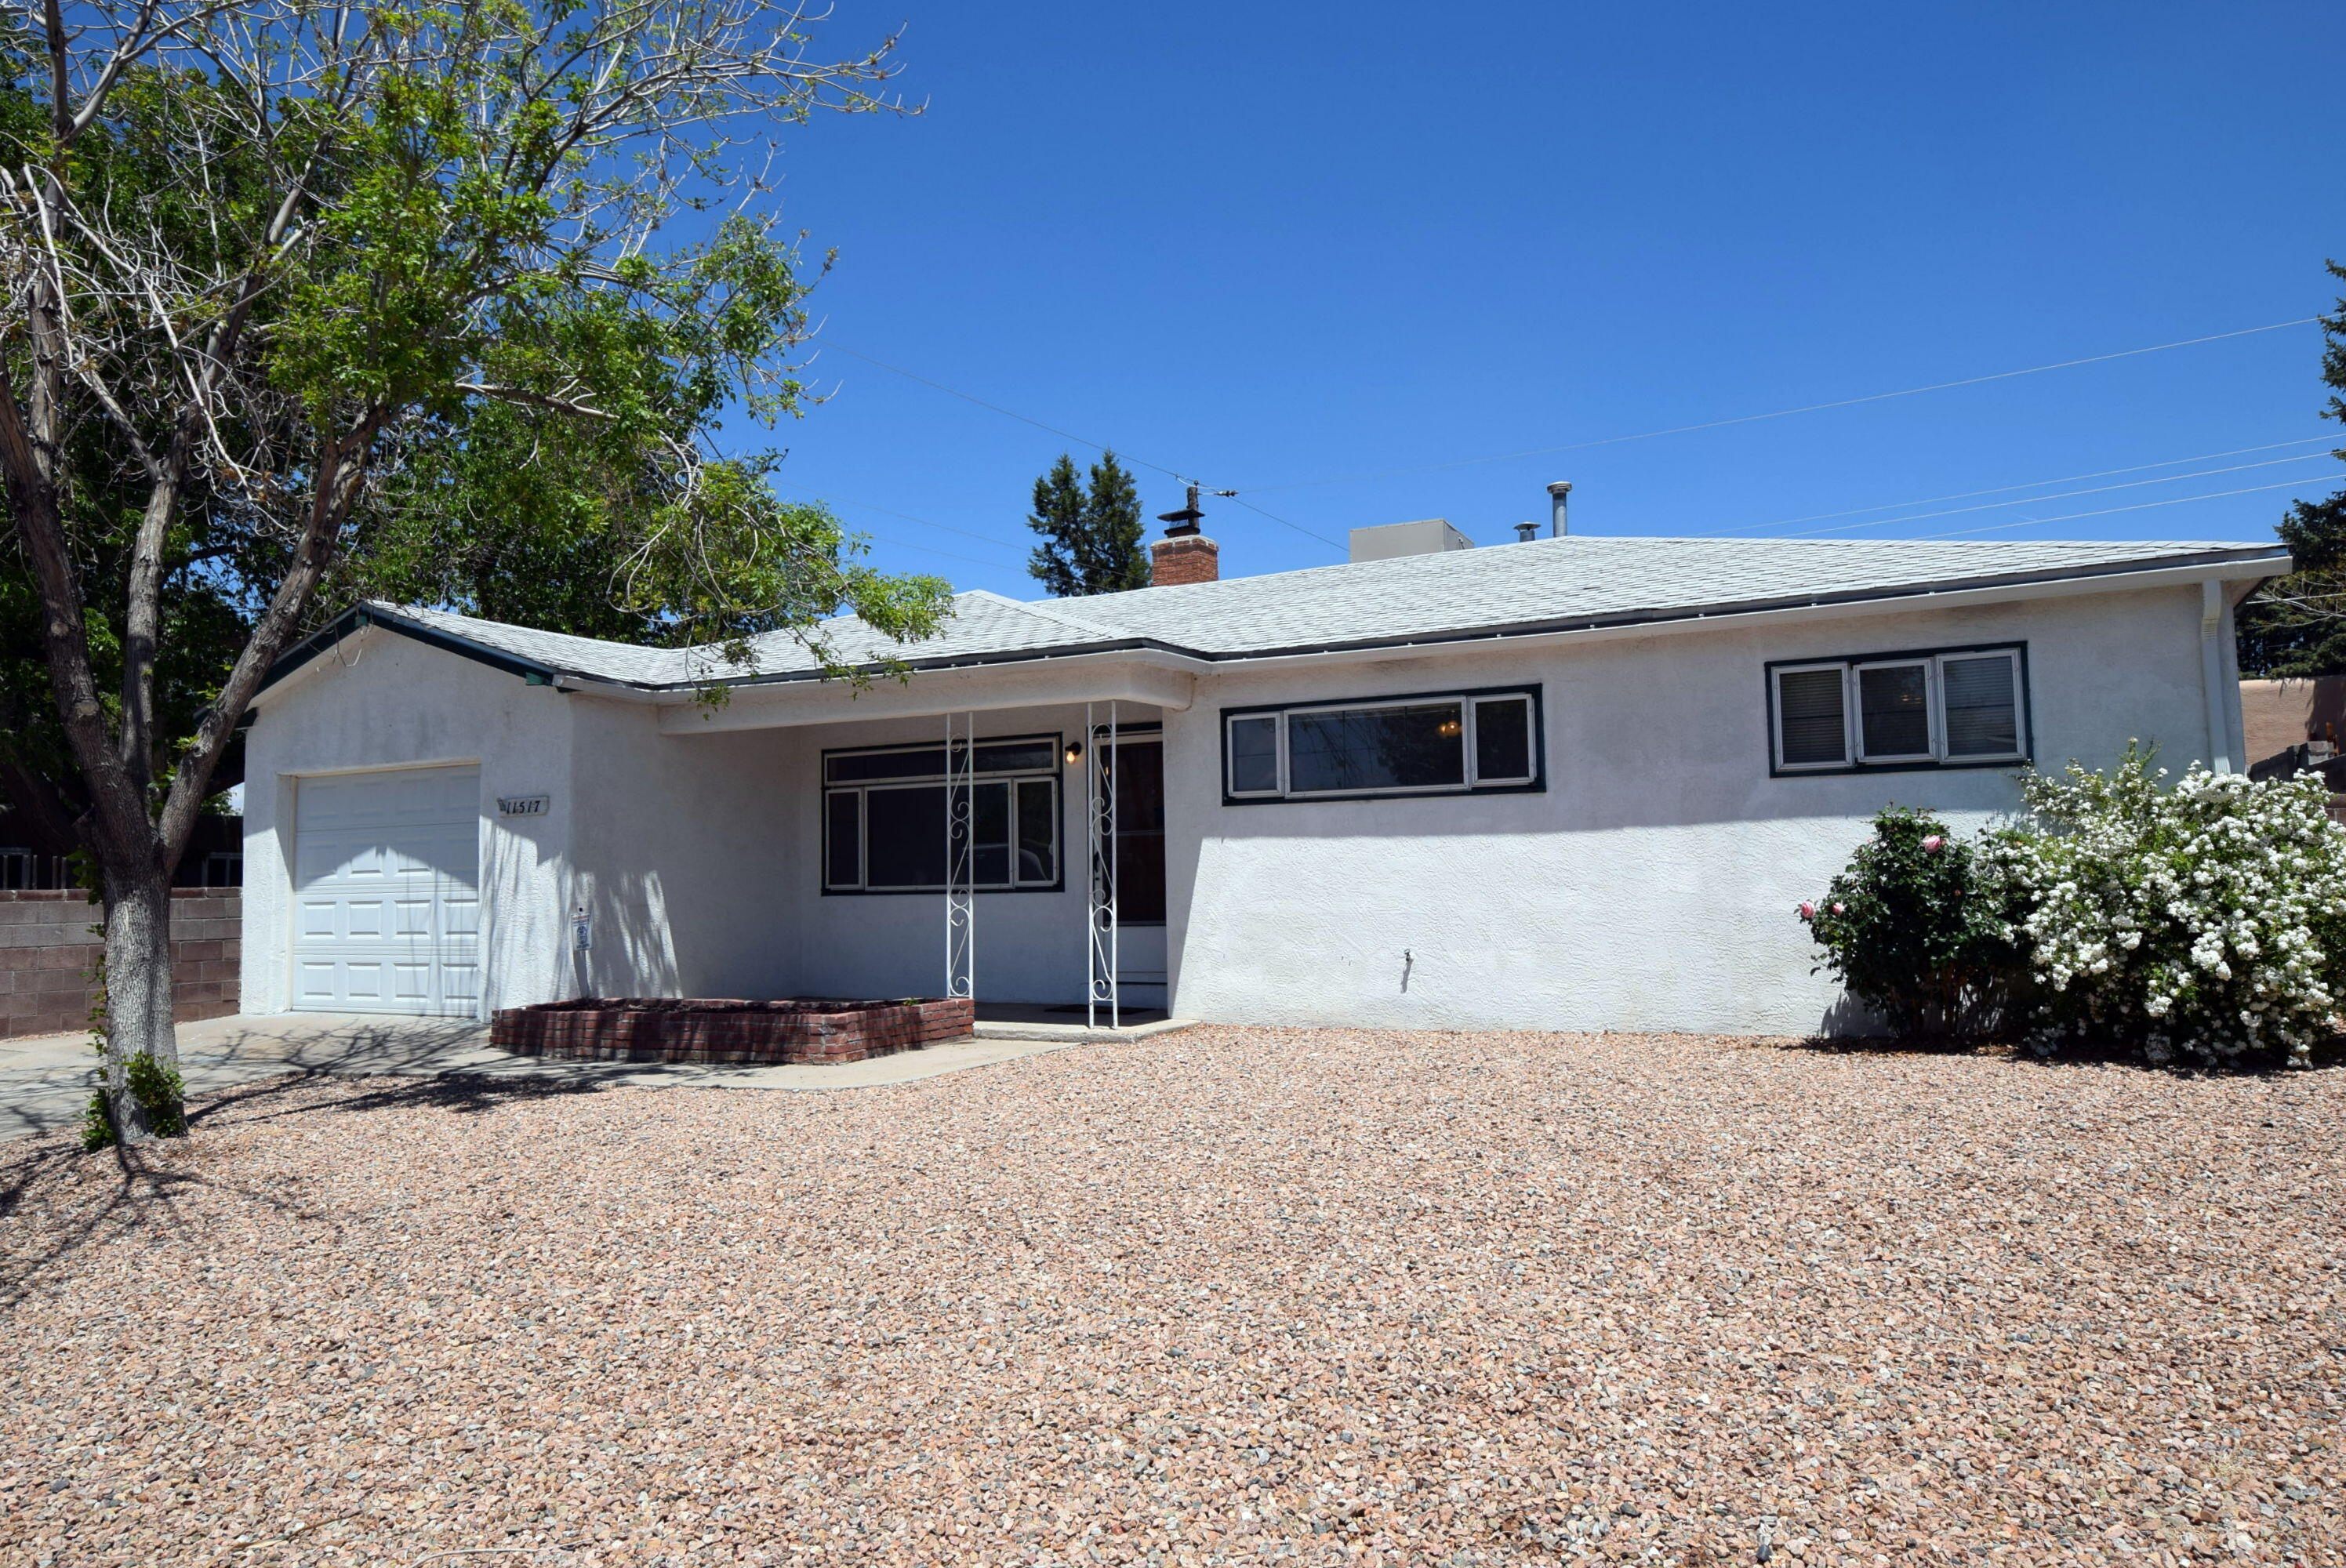 Gorgeous single level home in a well established neighborhood. Updates include flooring, remodeled kitchen and bathrooms. Sunroom (not heated )is approximately 241 sq ft additional. Close proximity to Kirtland Air Force Base, Sandia Labs, shopping, and restaurants.